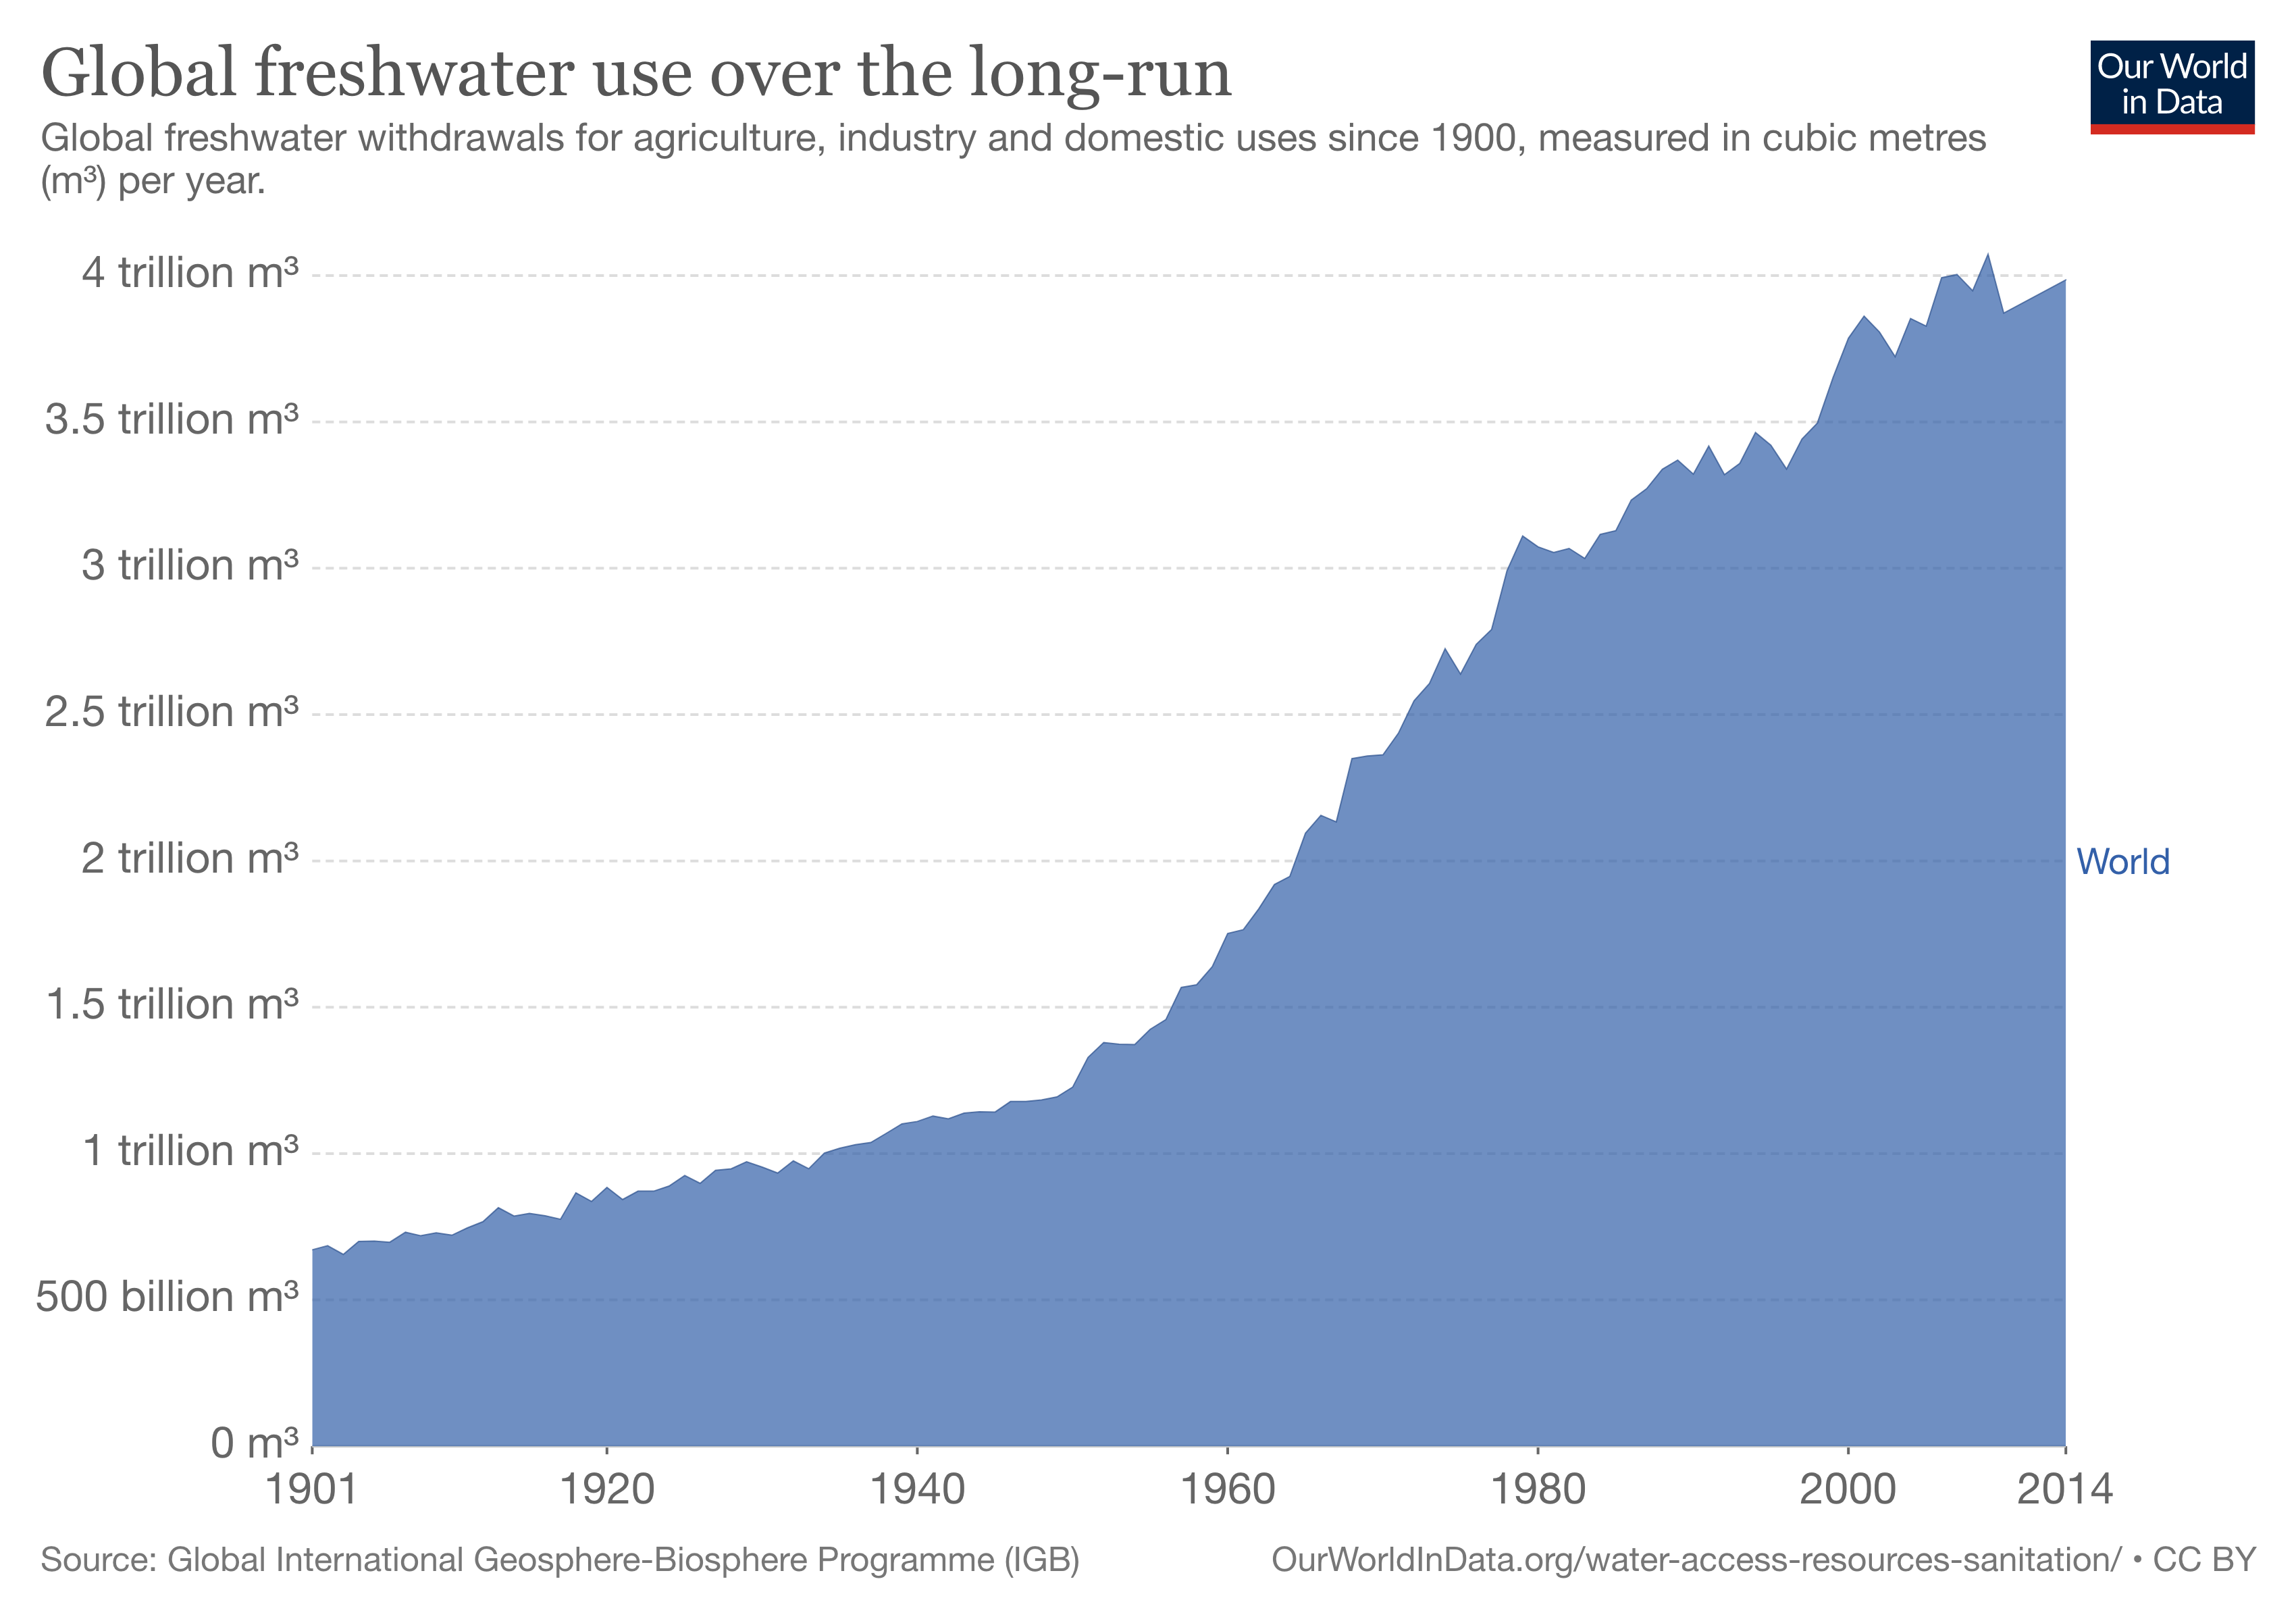 Global freshwater use over the long-run.